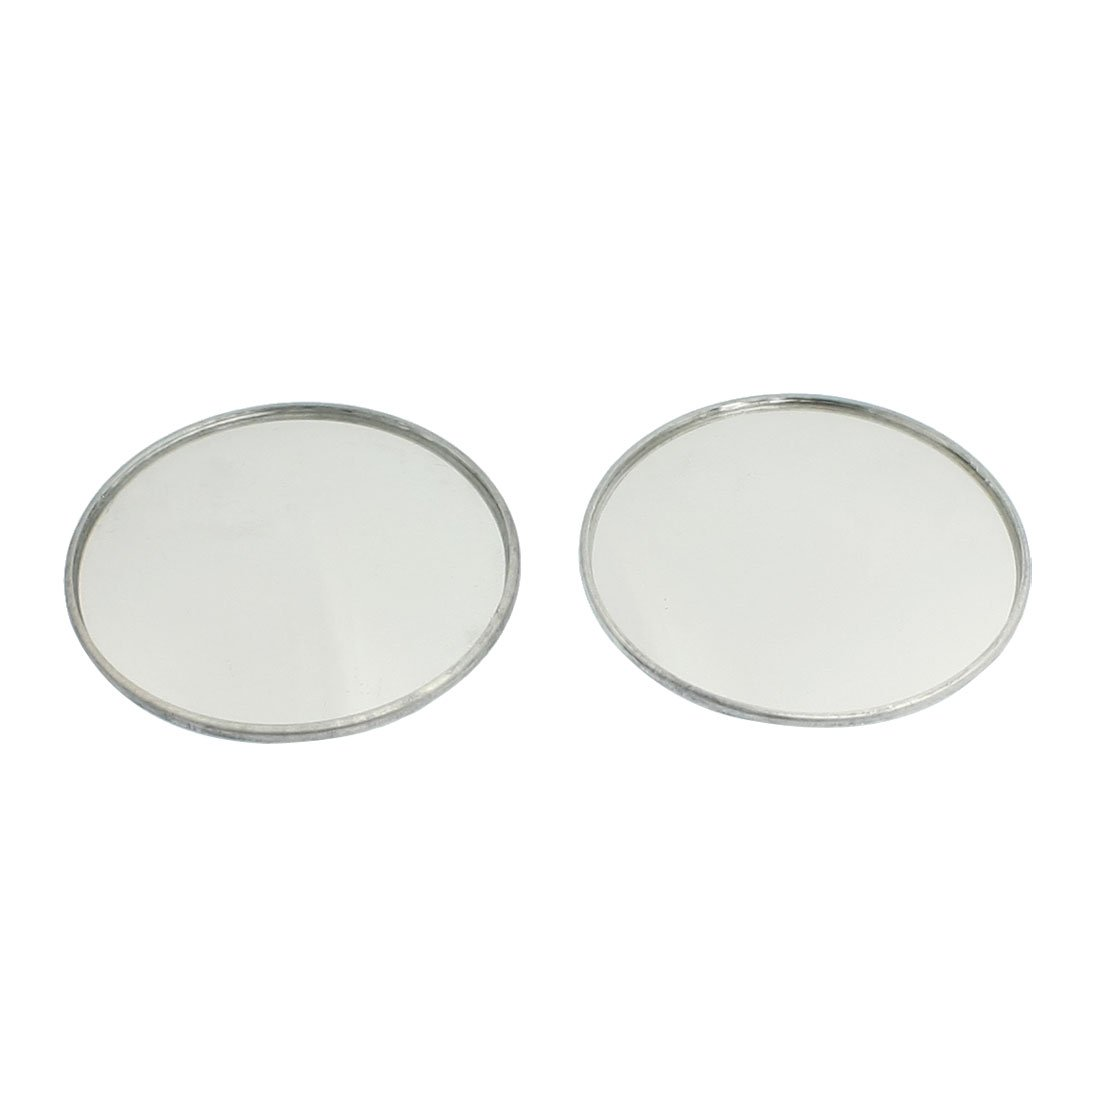 Promotion 2 x 1 9 Dia Round Metal Casing Convex font b Car b font Side